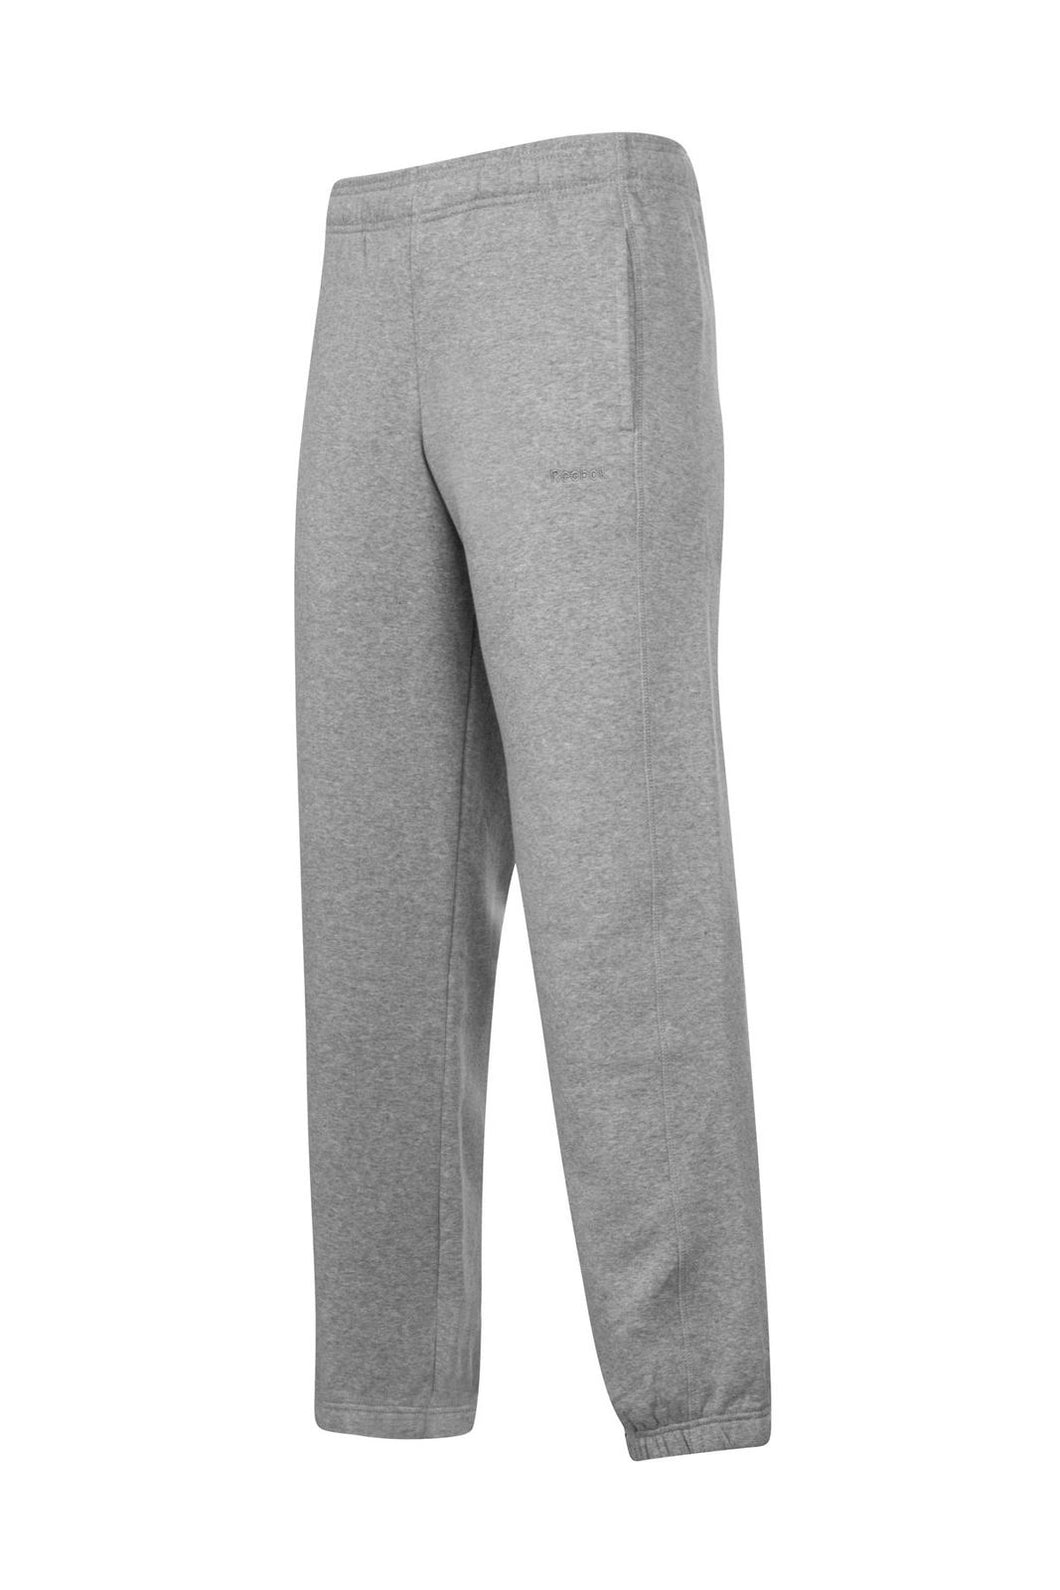 Reebok Core Cuff Sweat Pants Mens Grey